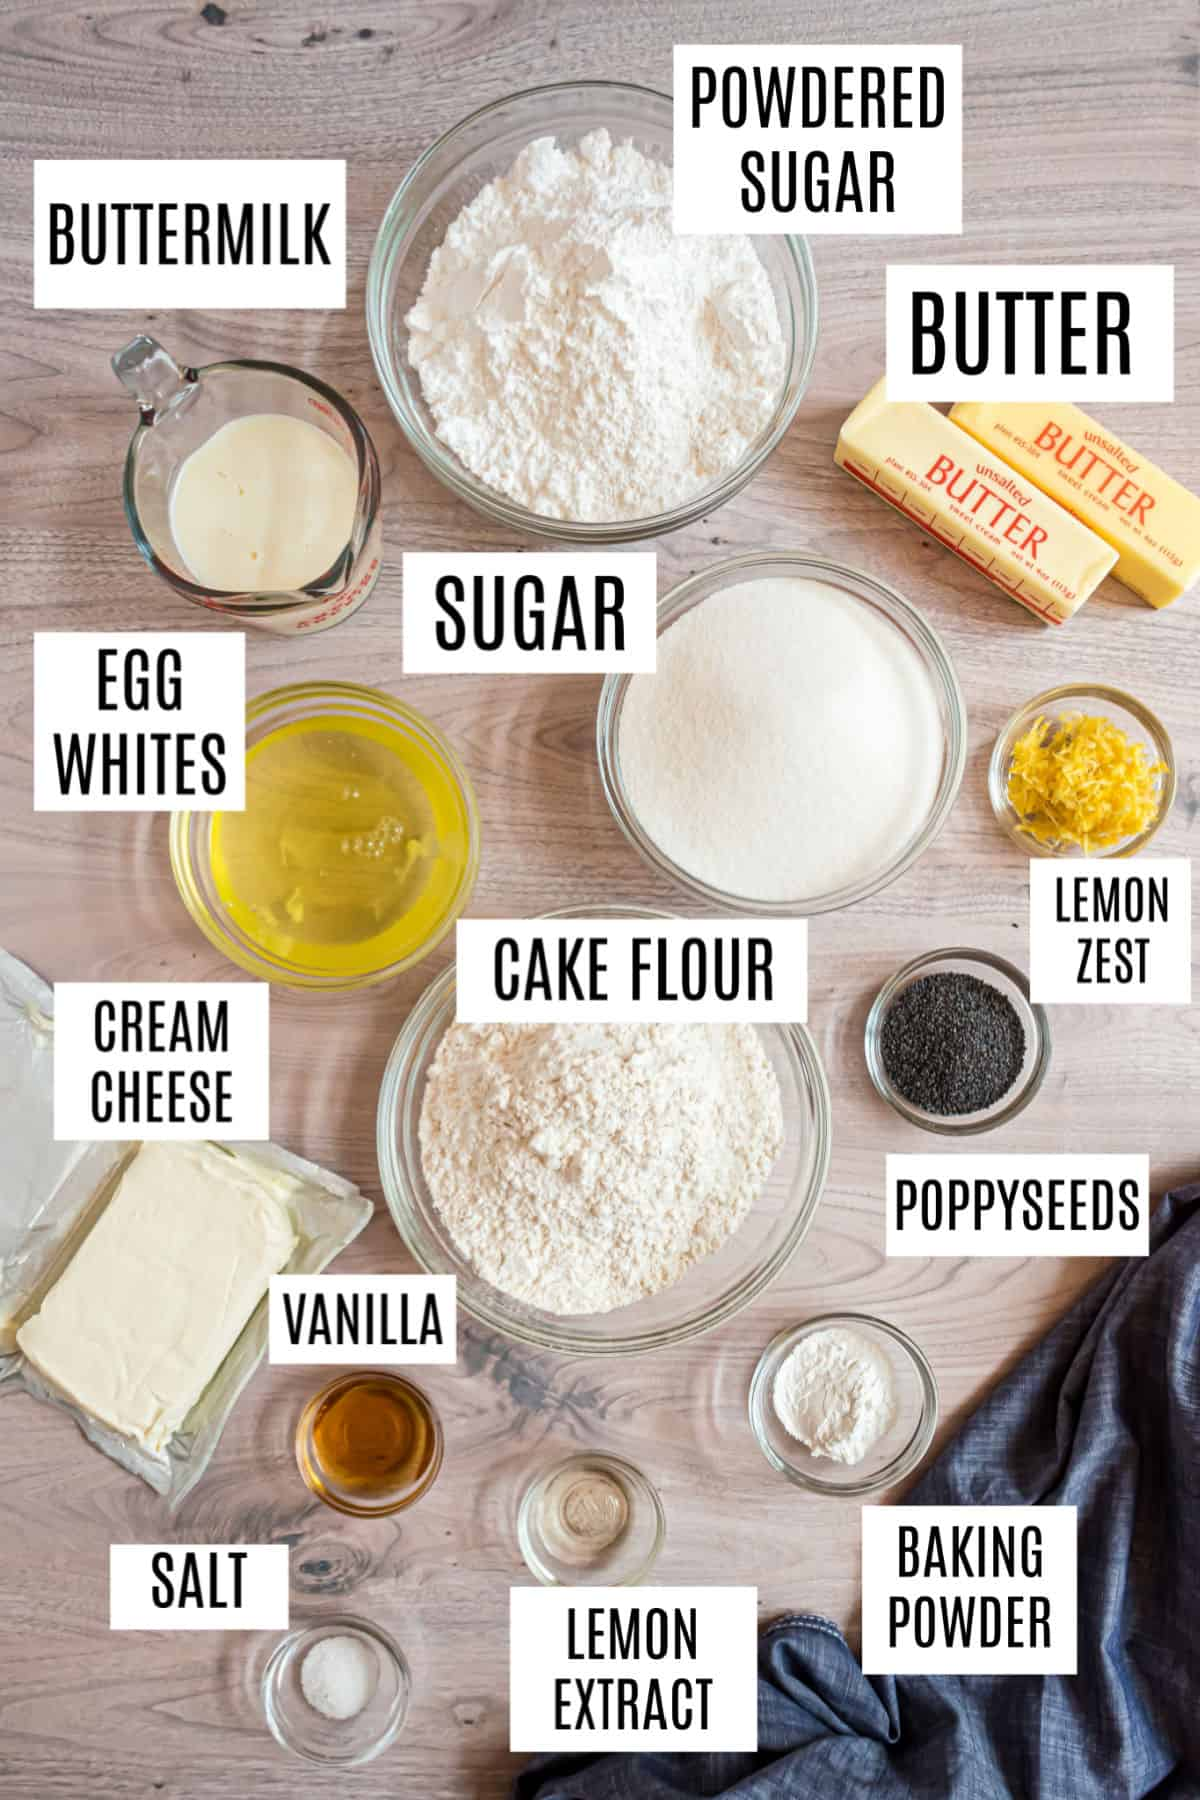 Ingredients needed to make a 13x9 pan of lemon poppy seed cake.